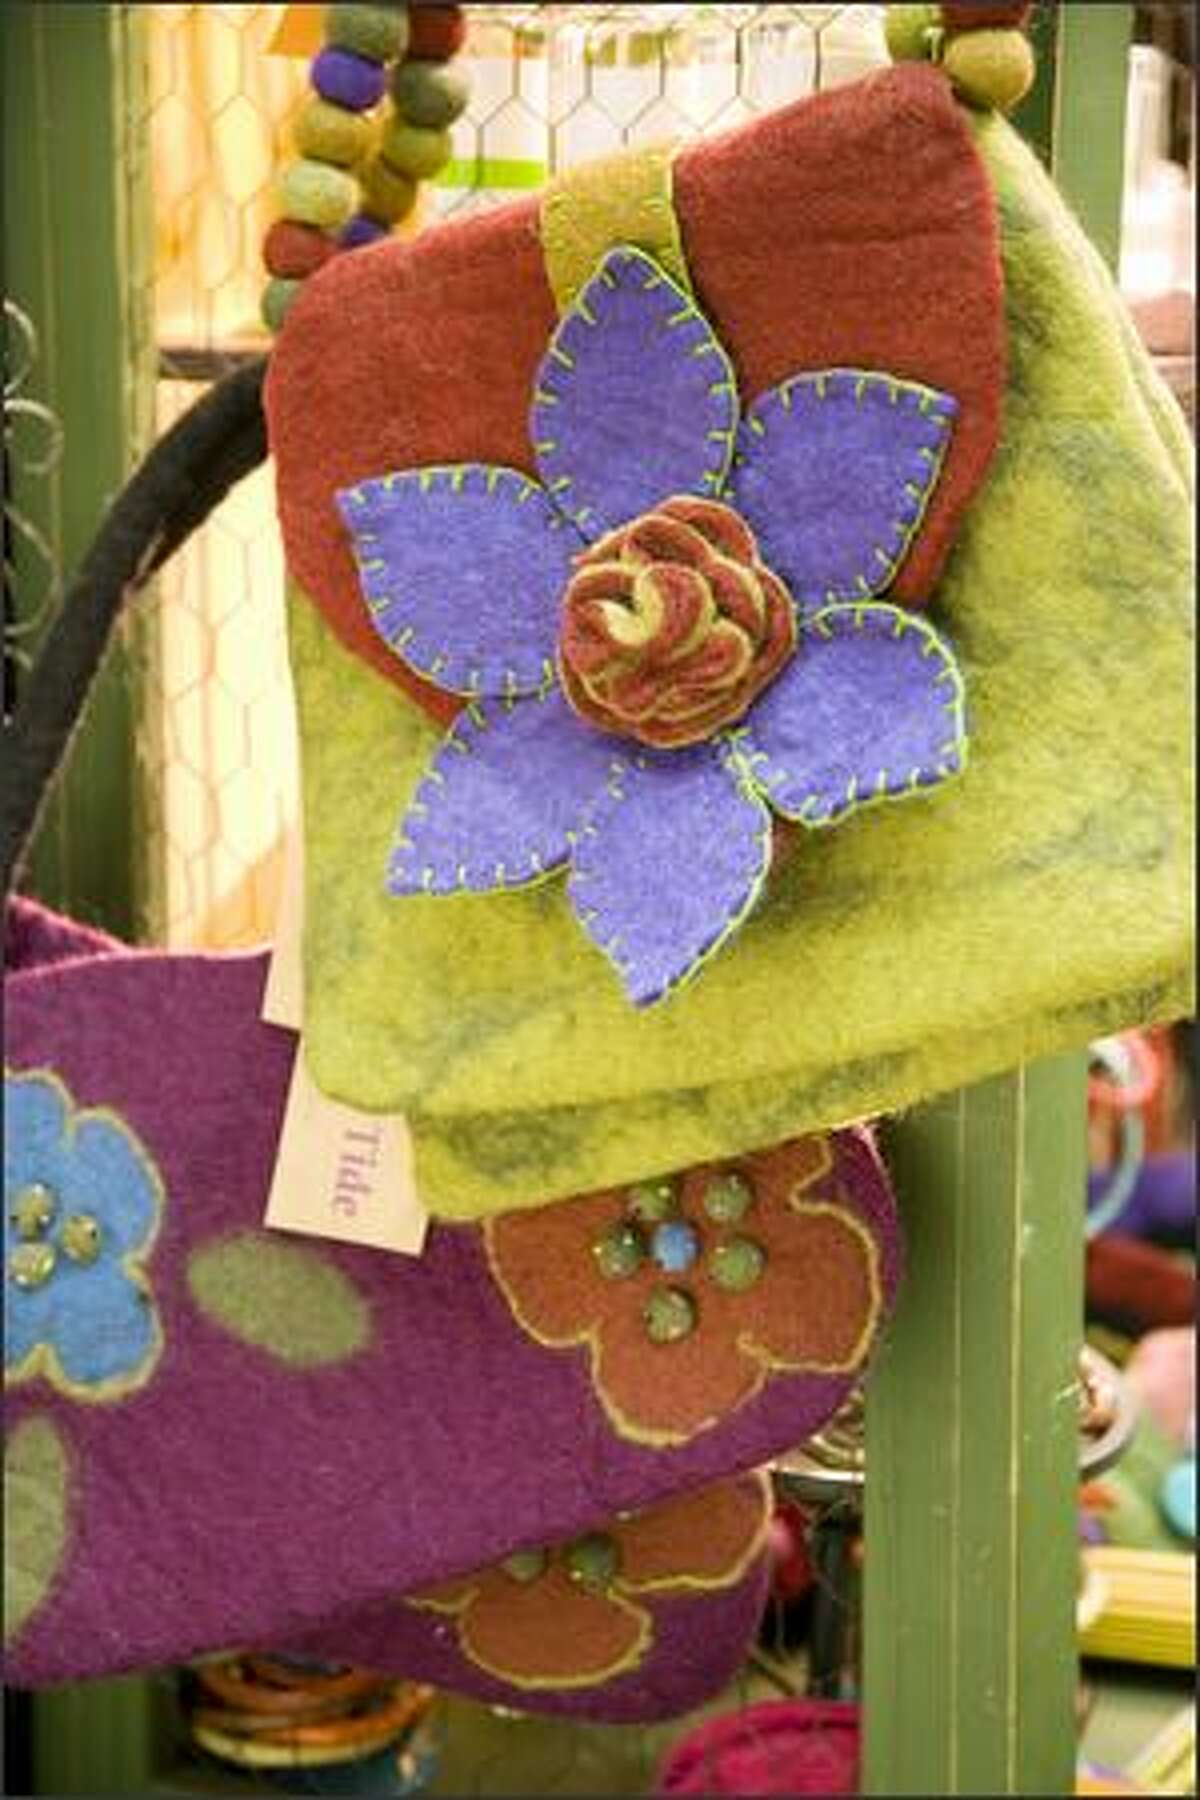 Fremont Gardens offers seeds, plants, felted wool purses and knickknacks at reasonable prices at booth 104.